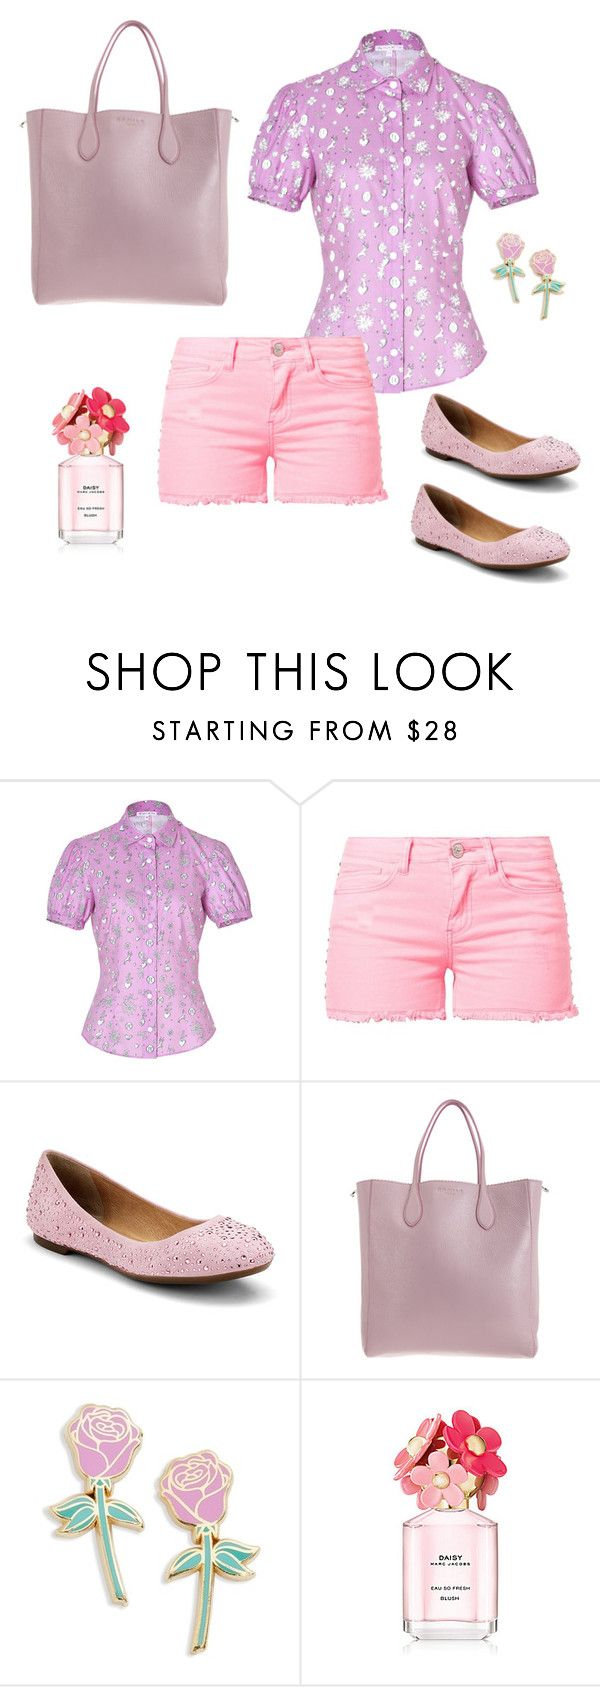 """Rosa Romantico"" by carolortiz ❤ liked on Polyvore featuring Olympia Le-Tan, MKT studio, Sperry, Rochas and Big Bud Press"